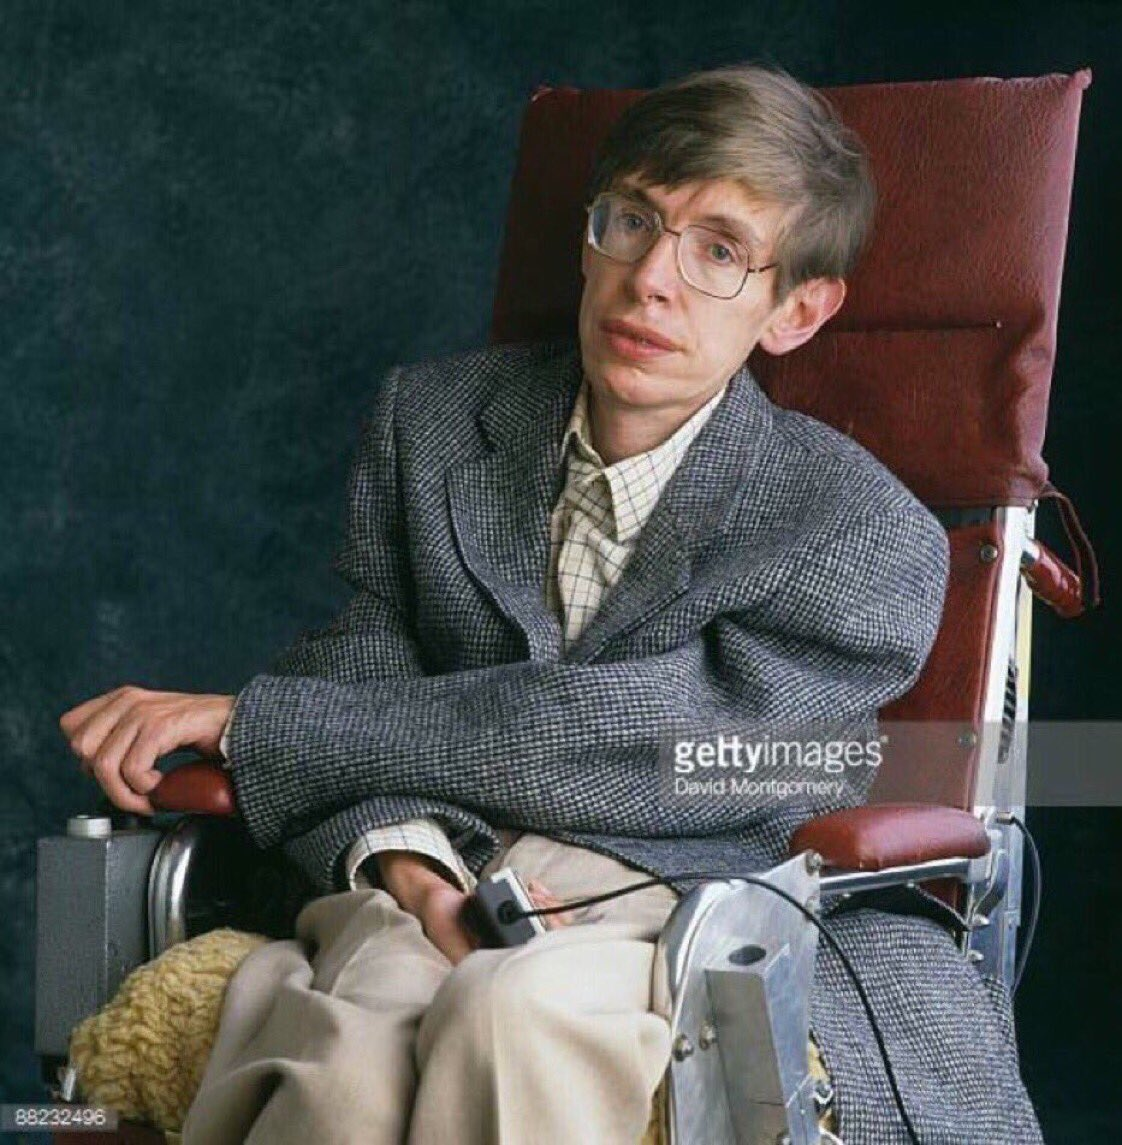 The greatest enemy of knowledg stephen hawking